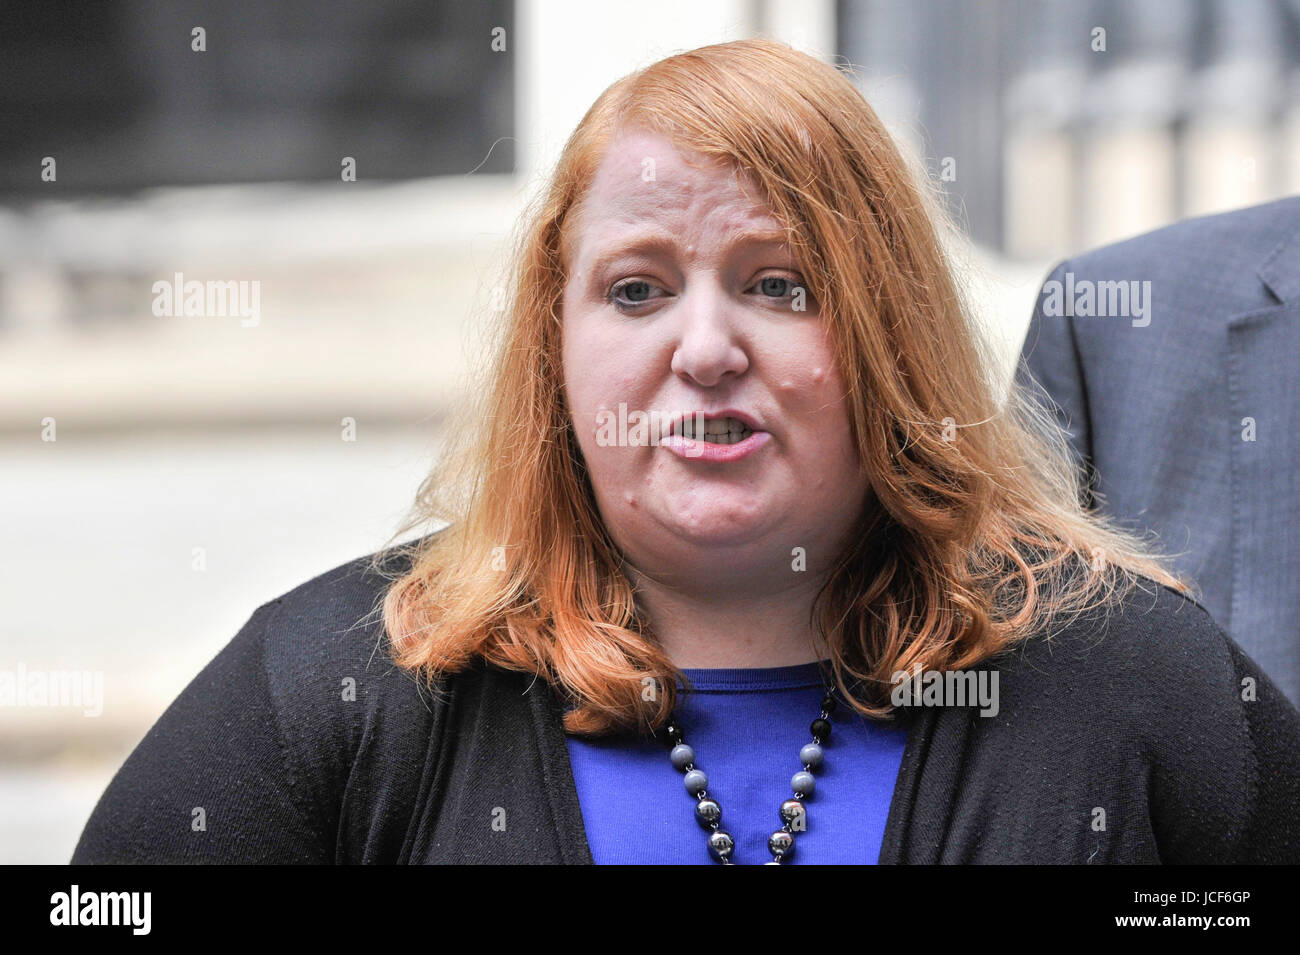 London, UK. 15th June, 2017. Naomi Long, leader of the Alliance Party, gives a press conference outside Number 10. - Stock Image